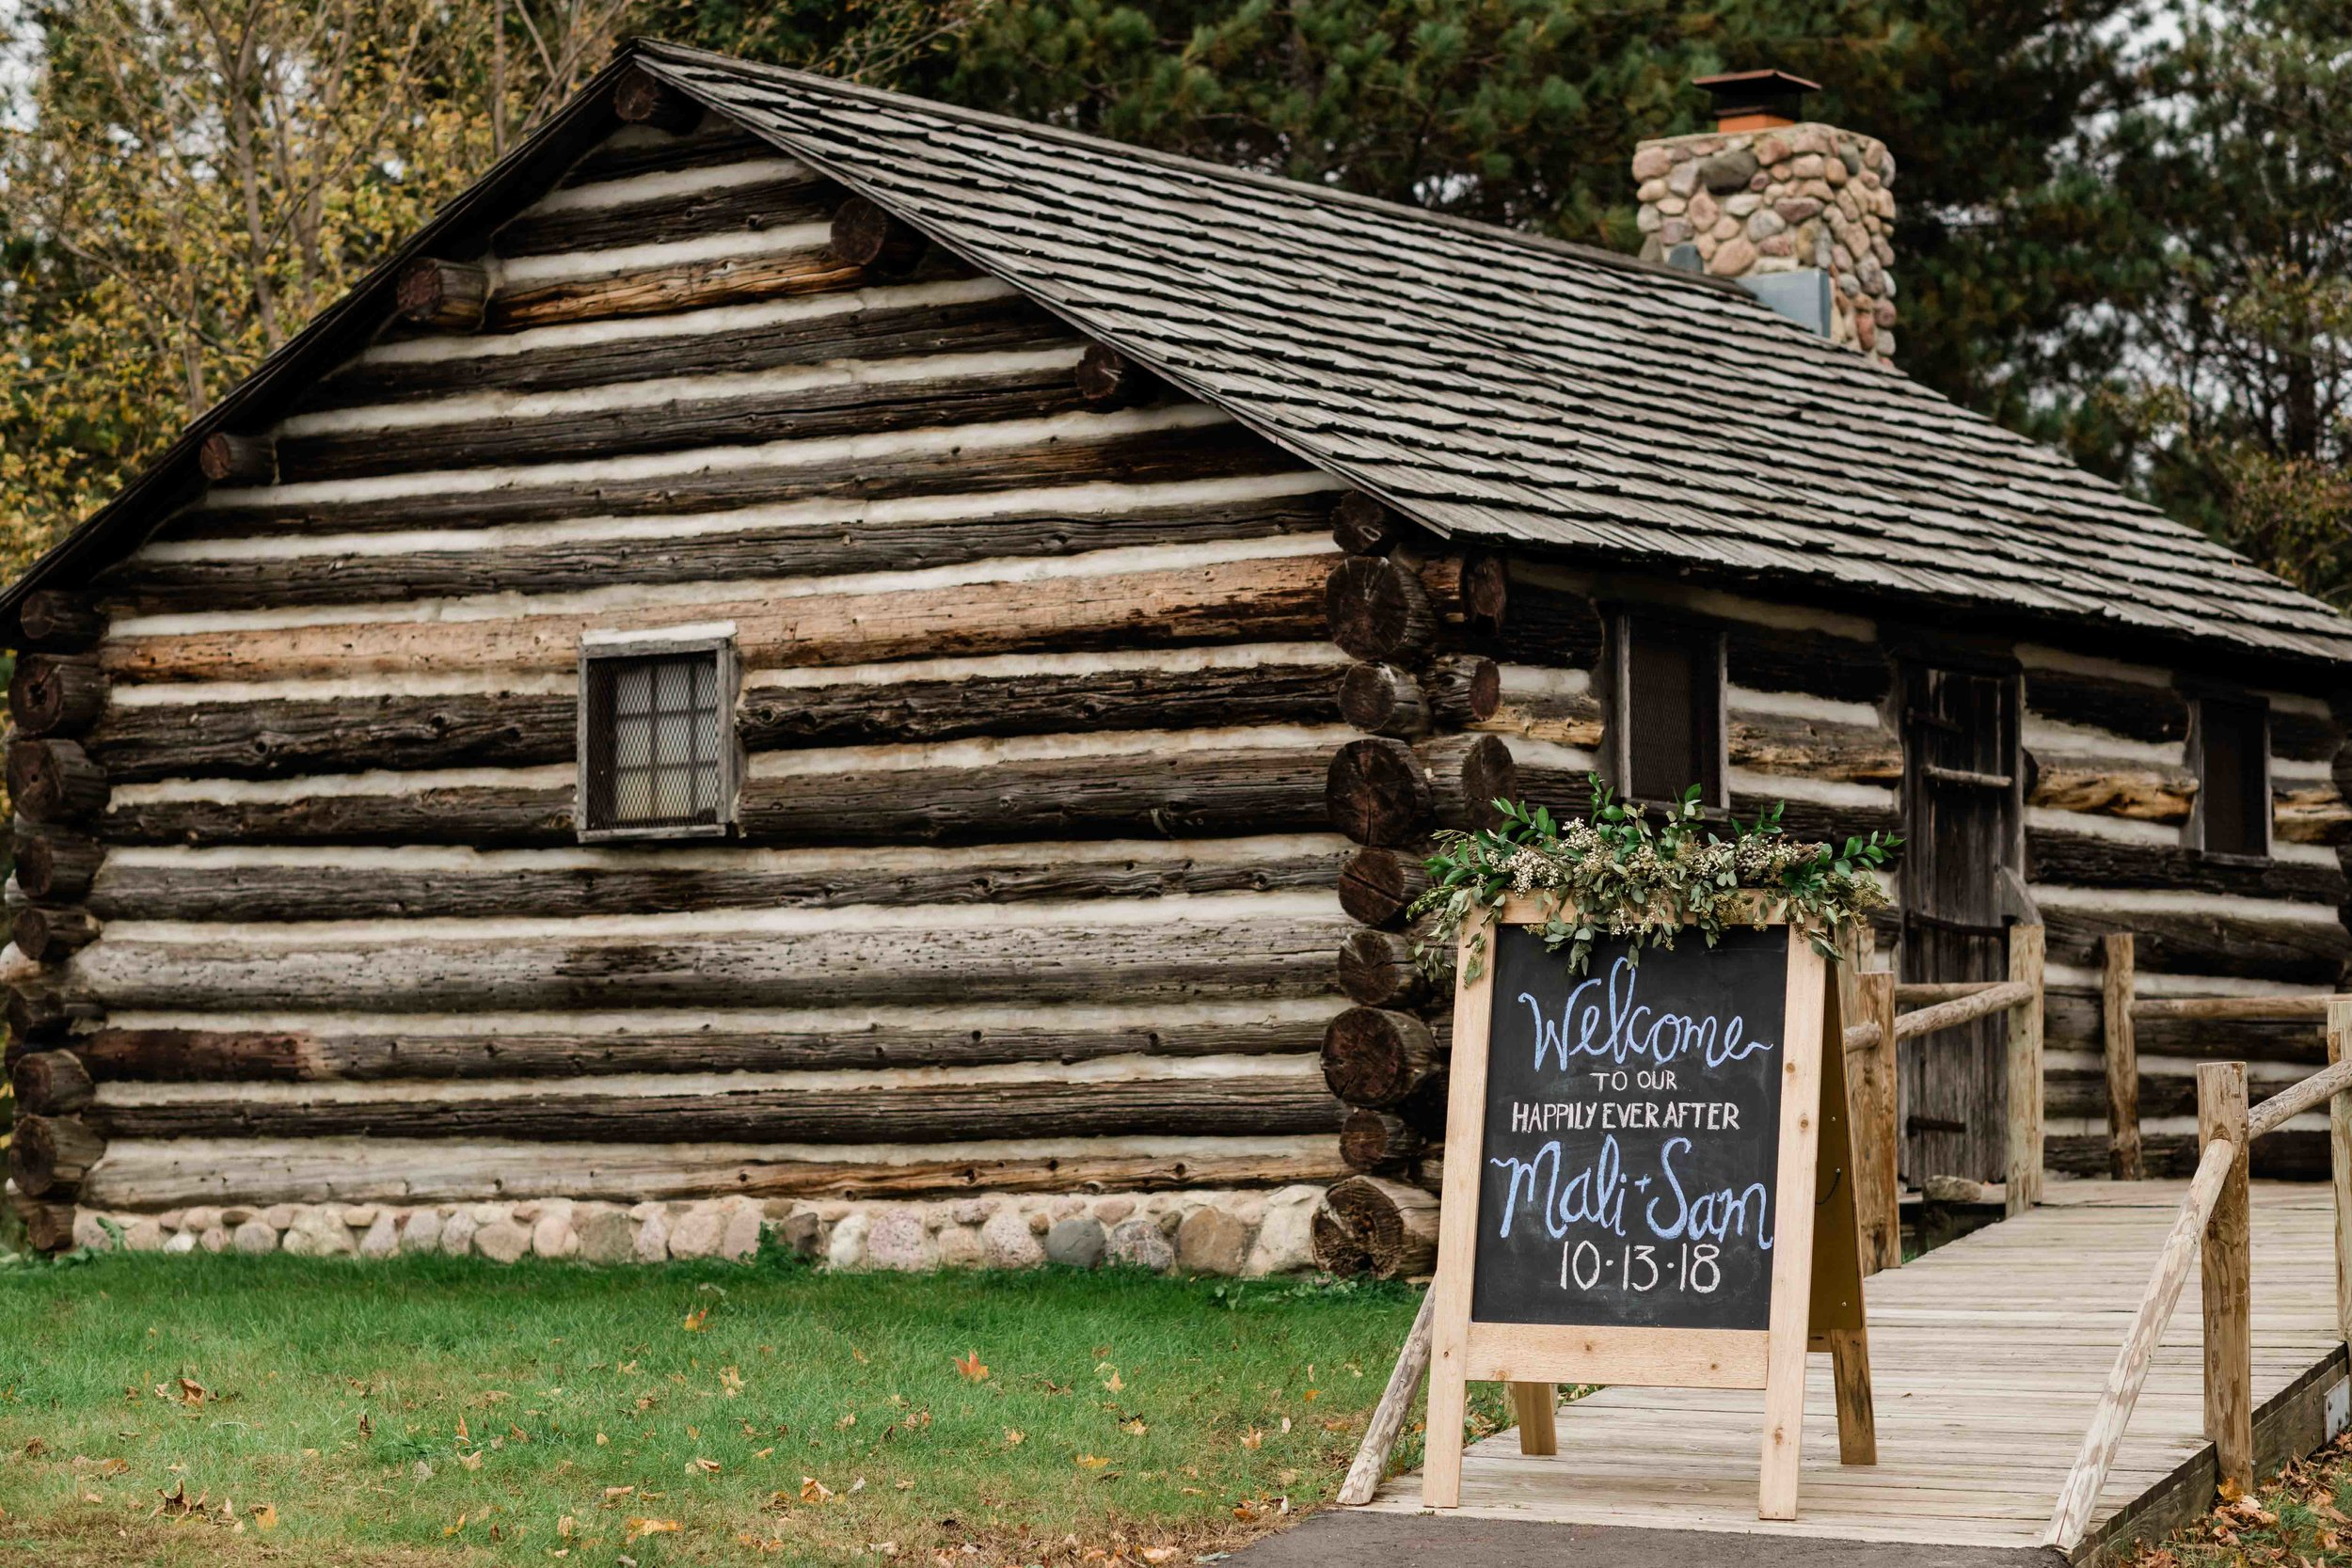 Wedding sign in front of log cabin